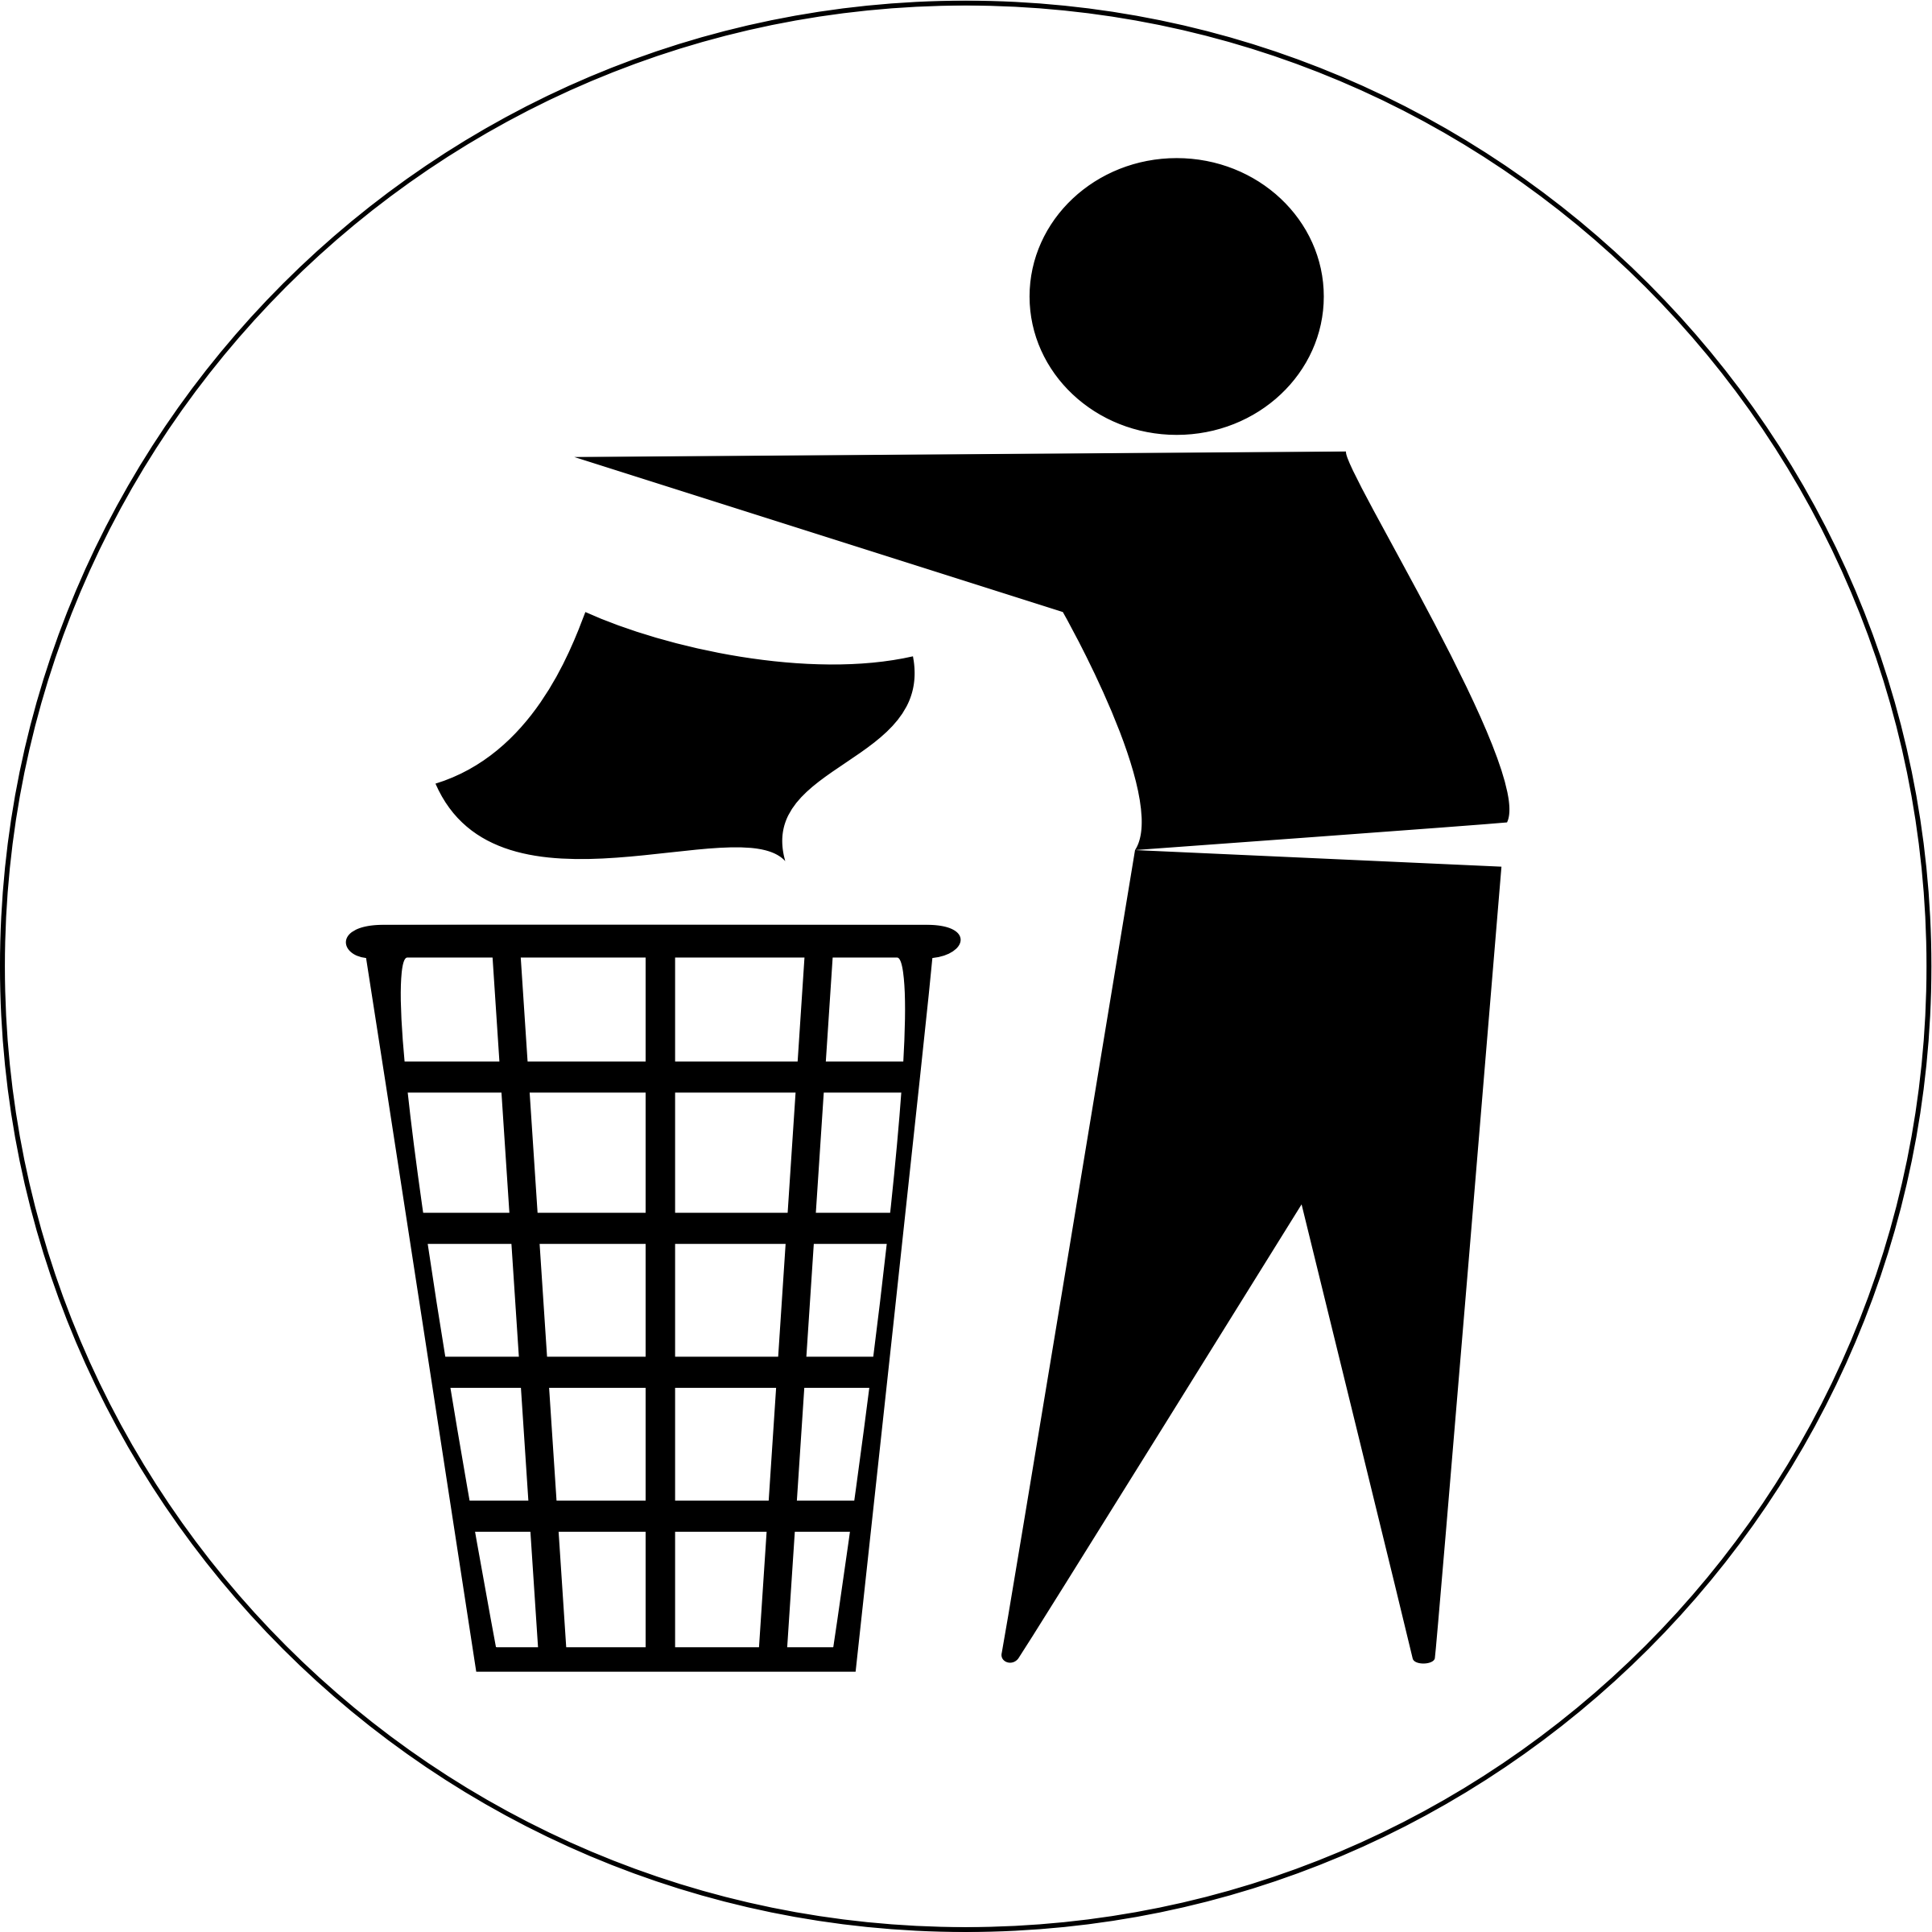 beautifulhealer Put Rubbish in Bin Signs by @doctormo, Use.